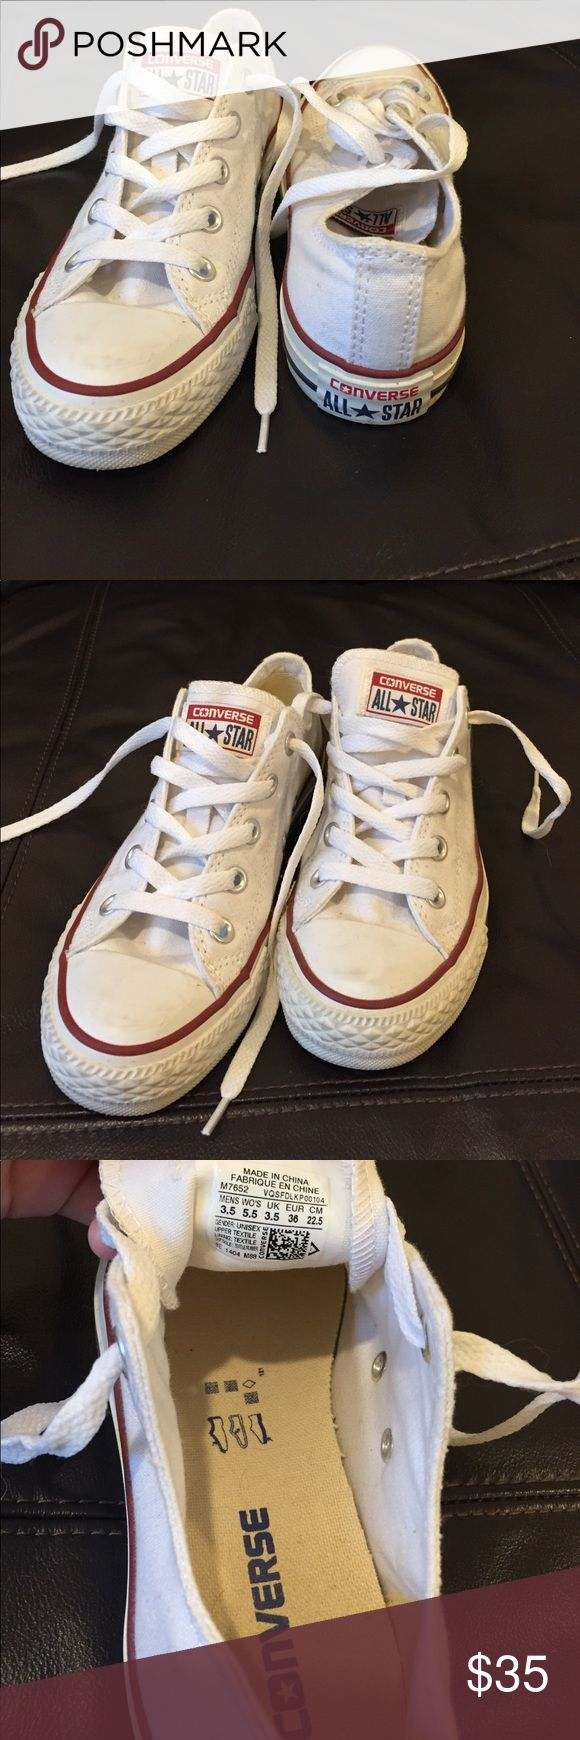 White low top converse White low top converse. Authentic! Only worn once or twice. In excellent condition. Women's 5.5. Original box not included. Will be cleaned up before delivery. Converse Shoes Sneakers